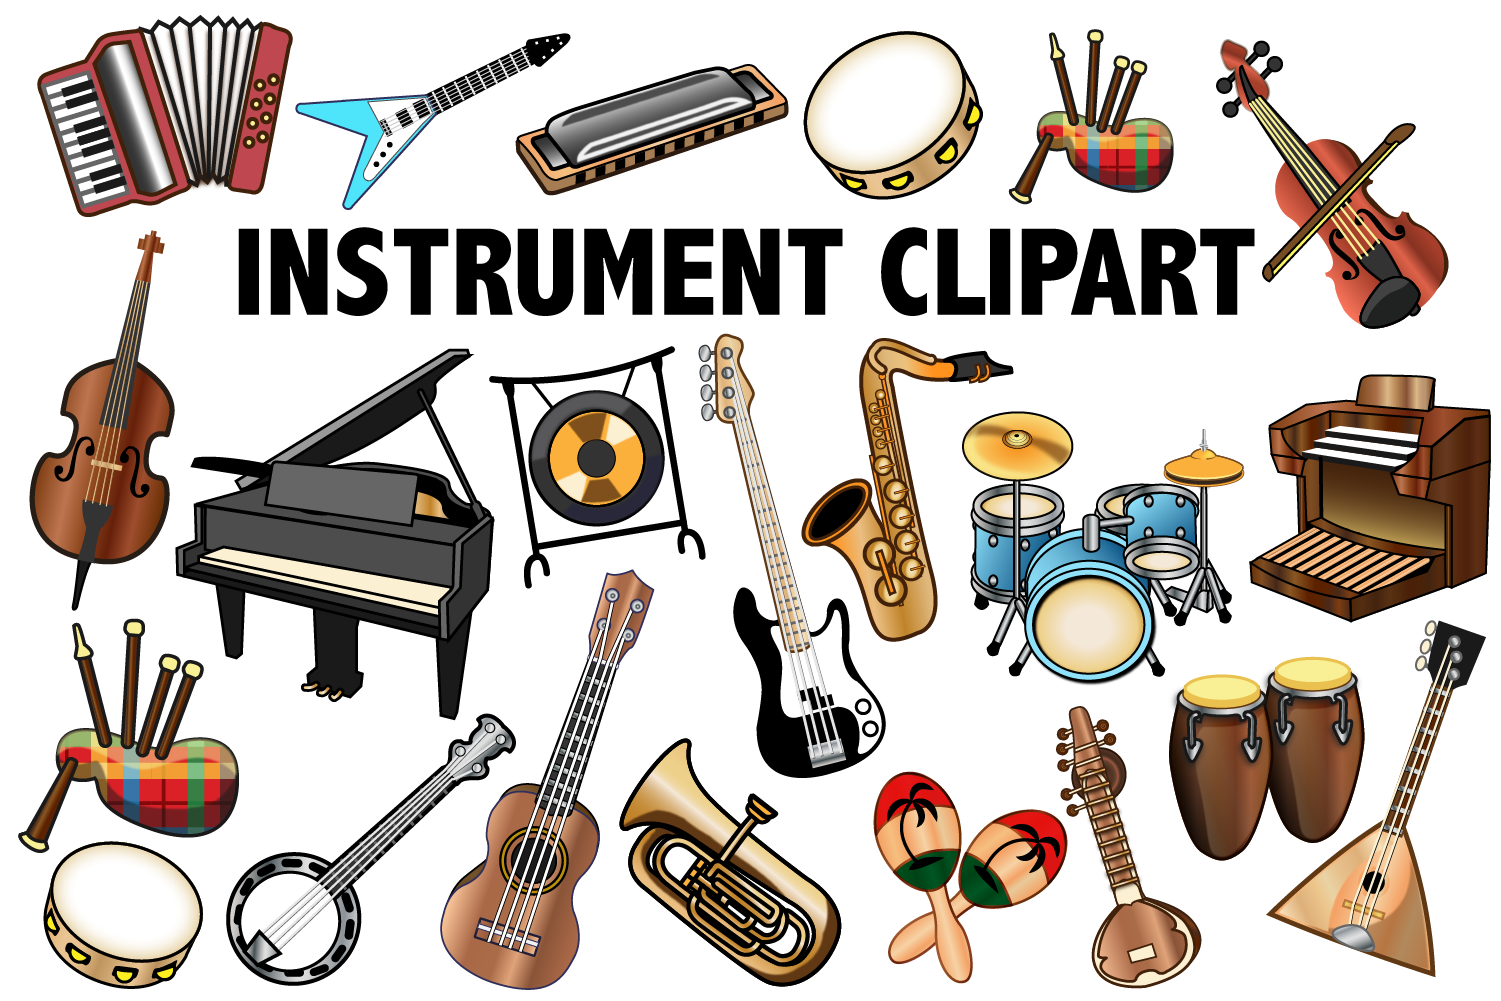 instrument clipart musical music mine eyes graphic creative illustrations cliparts clipground designer cart follow